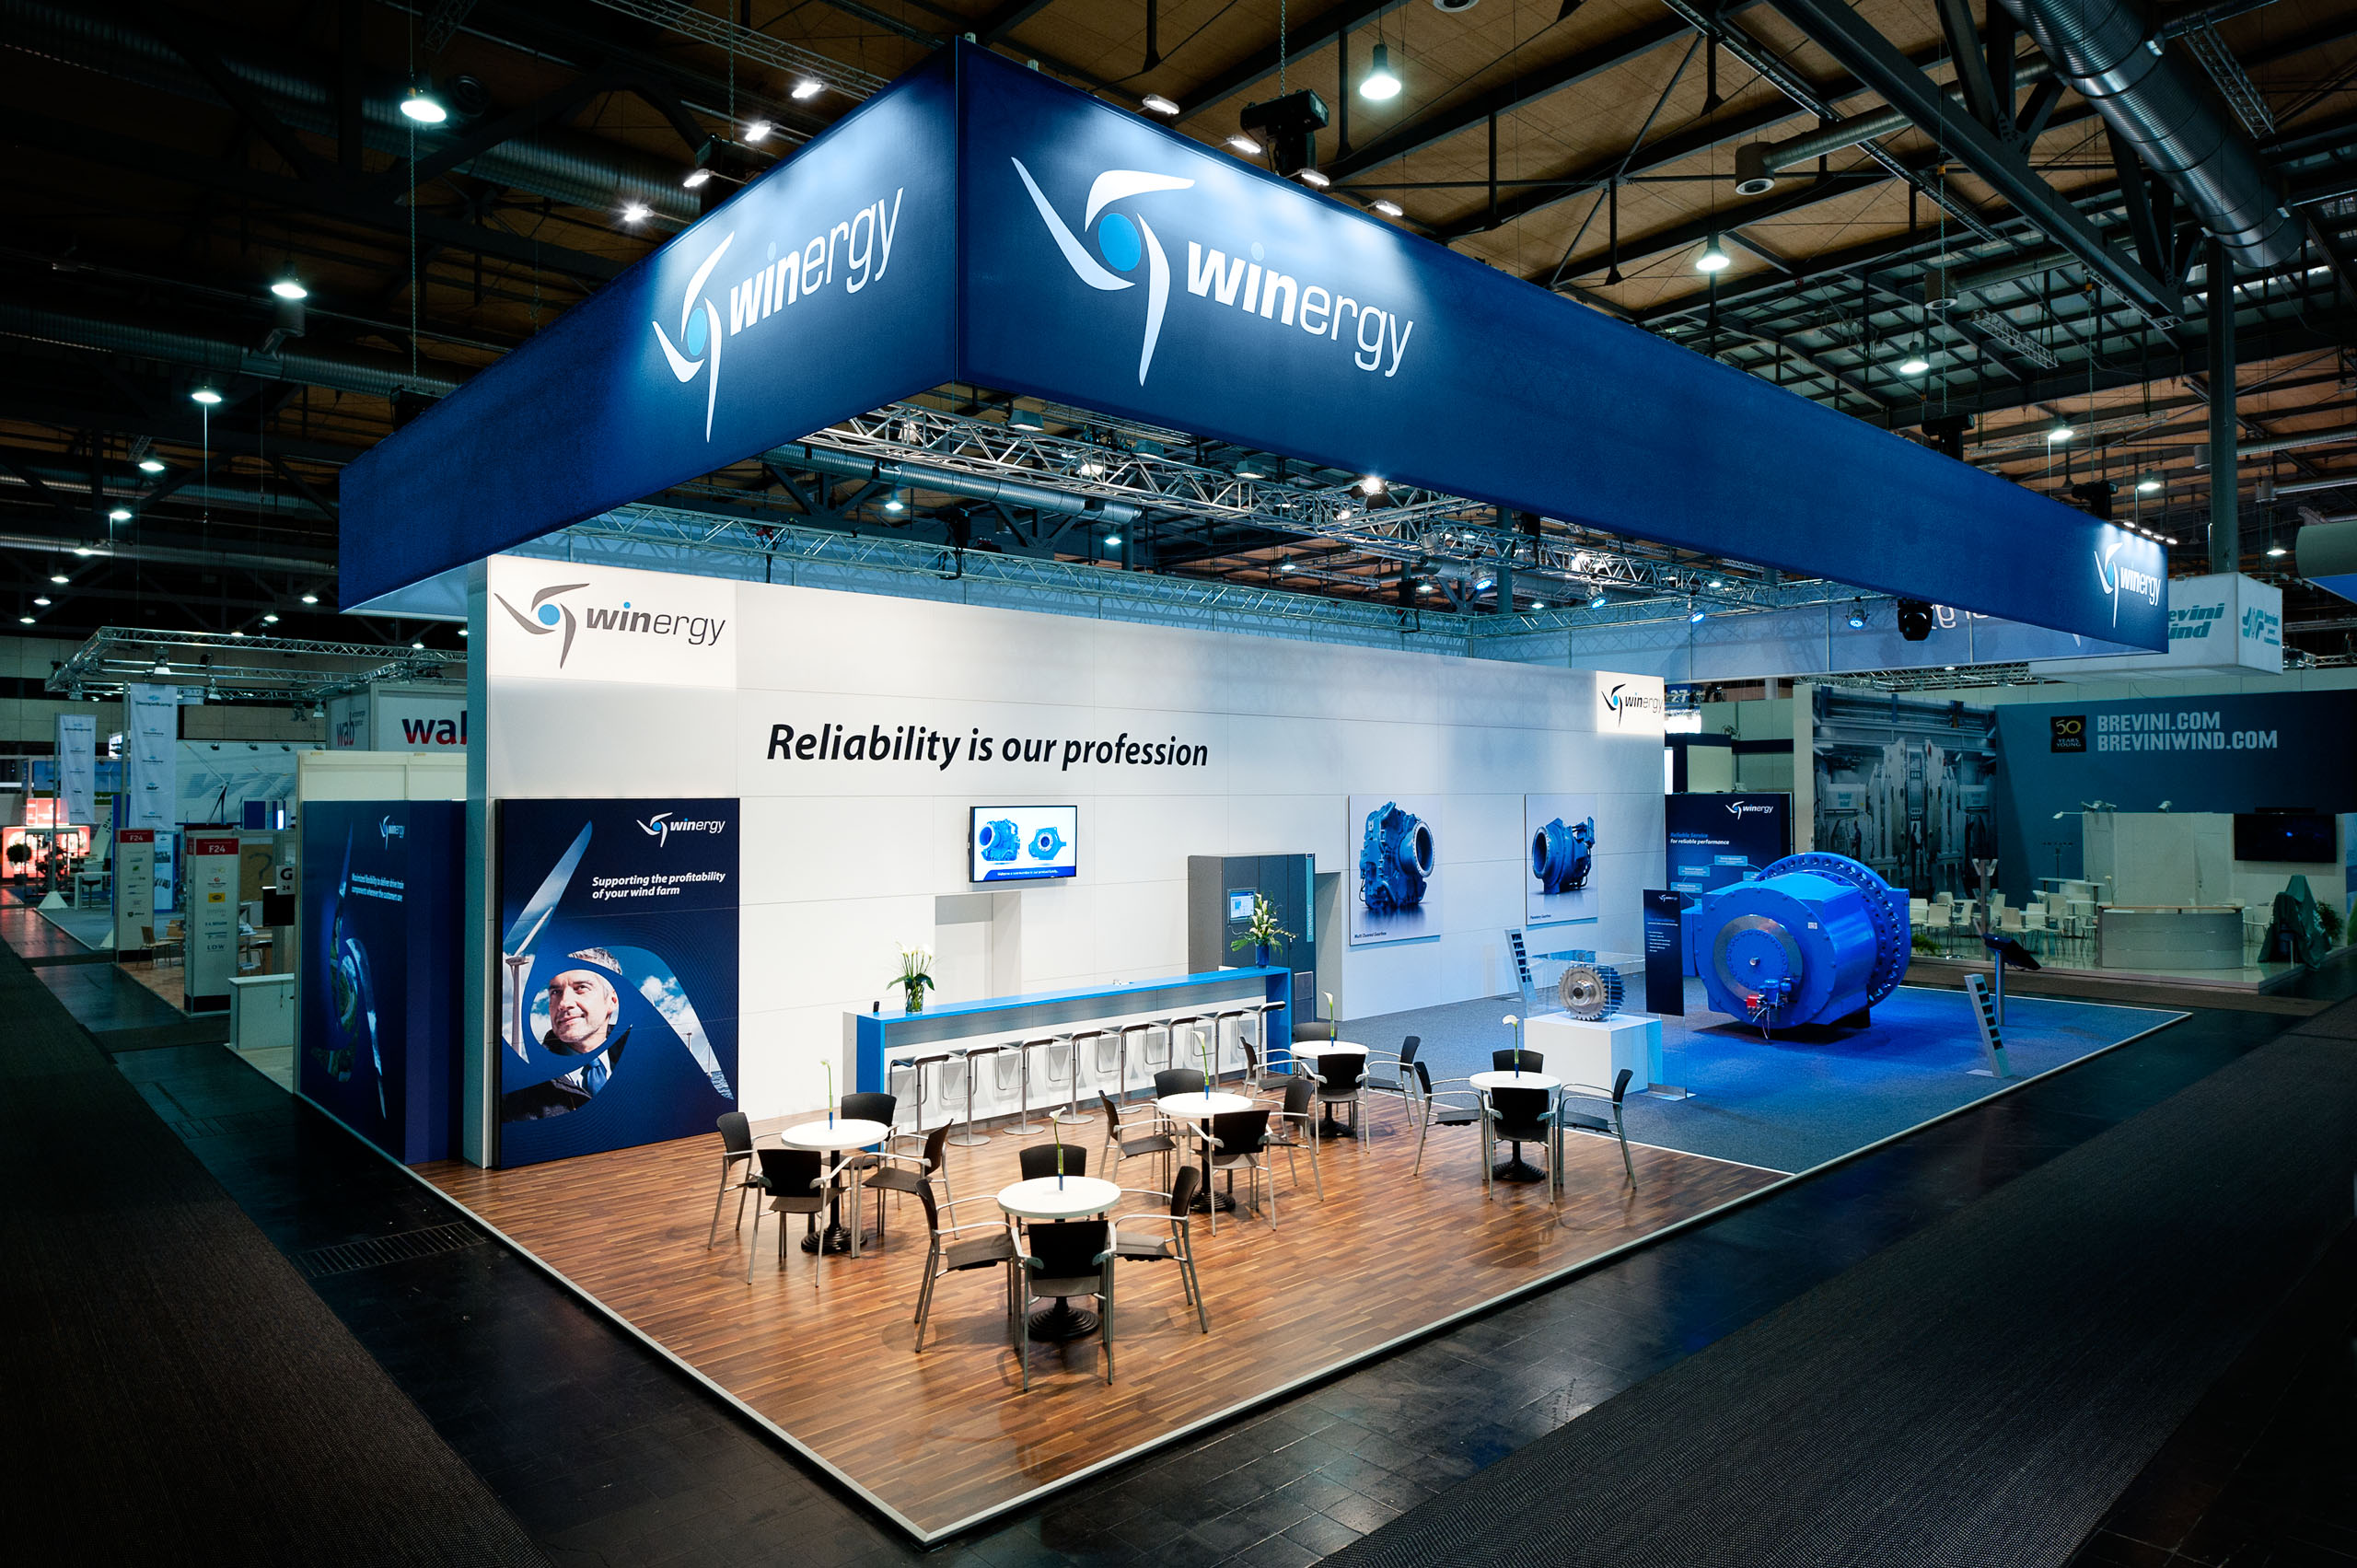 Winergy / Hannover Messe International